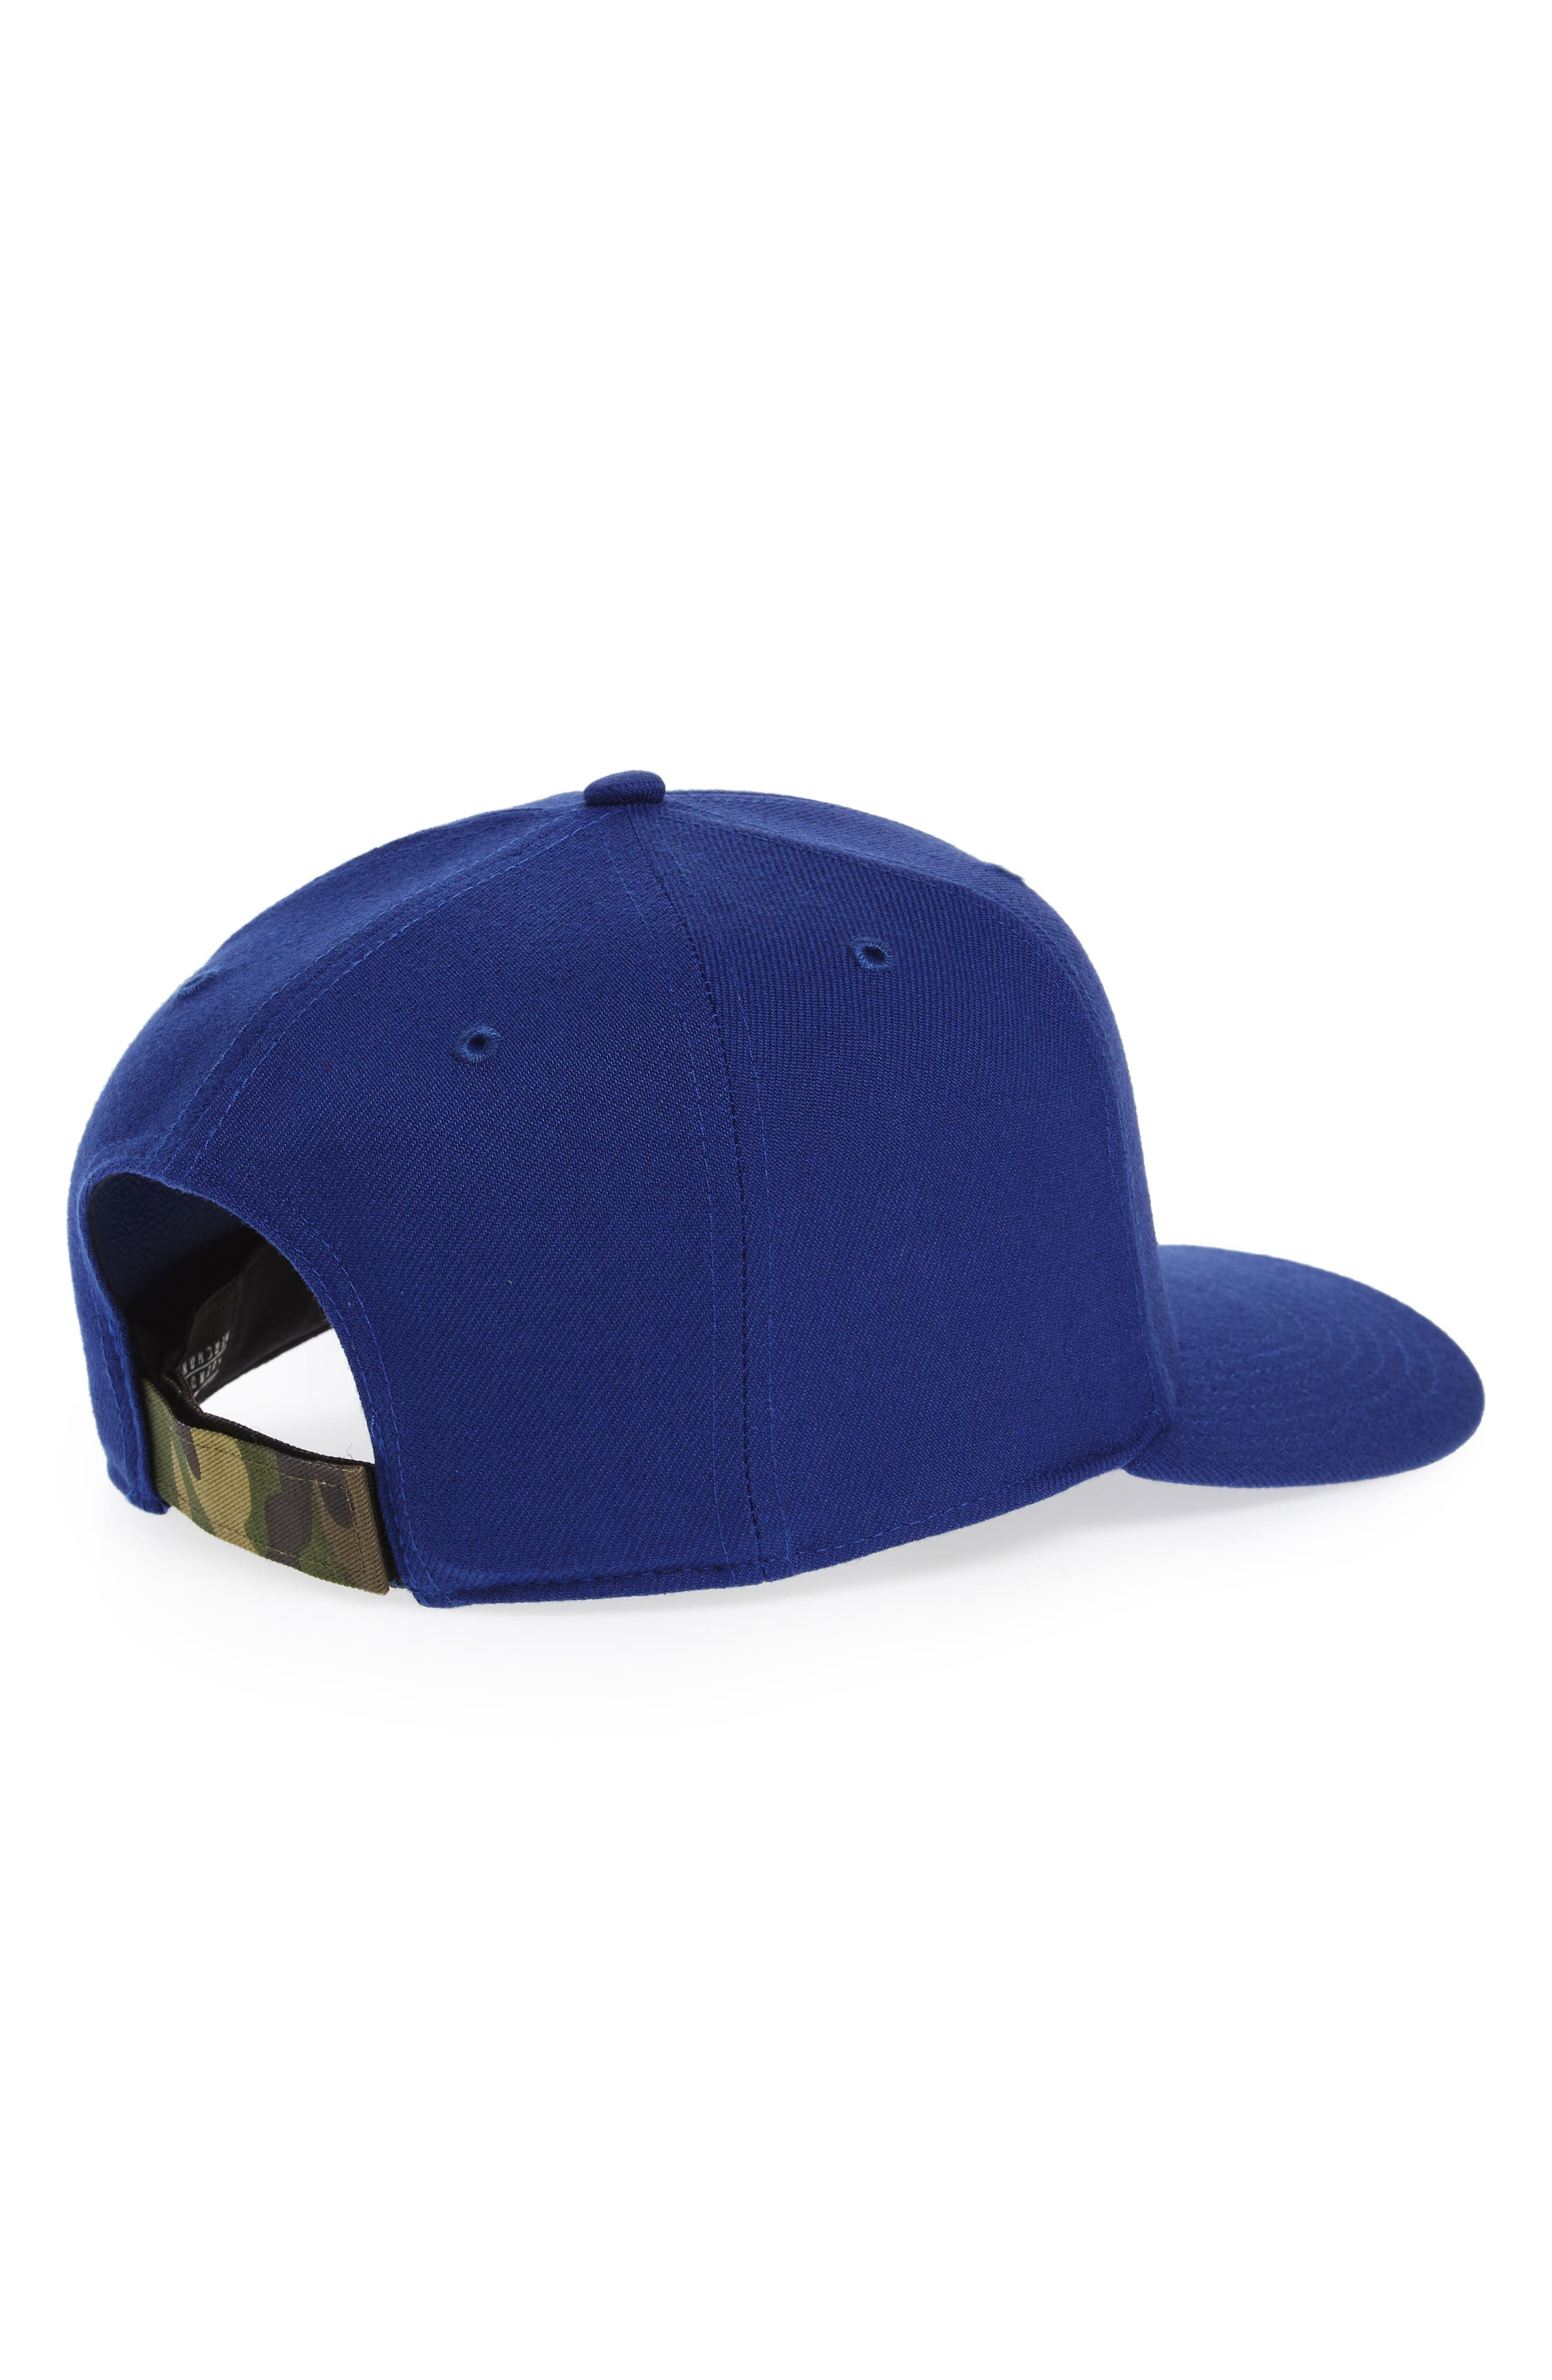 Los Angeles Dodgers - Camouflage Baseball Cap,                             Alternate thumbnail 2, color,